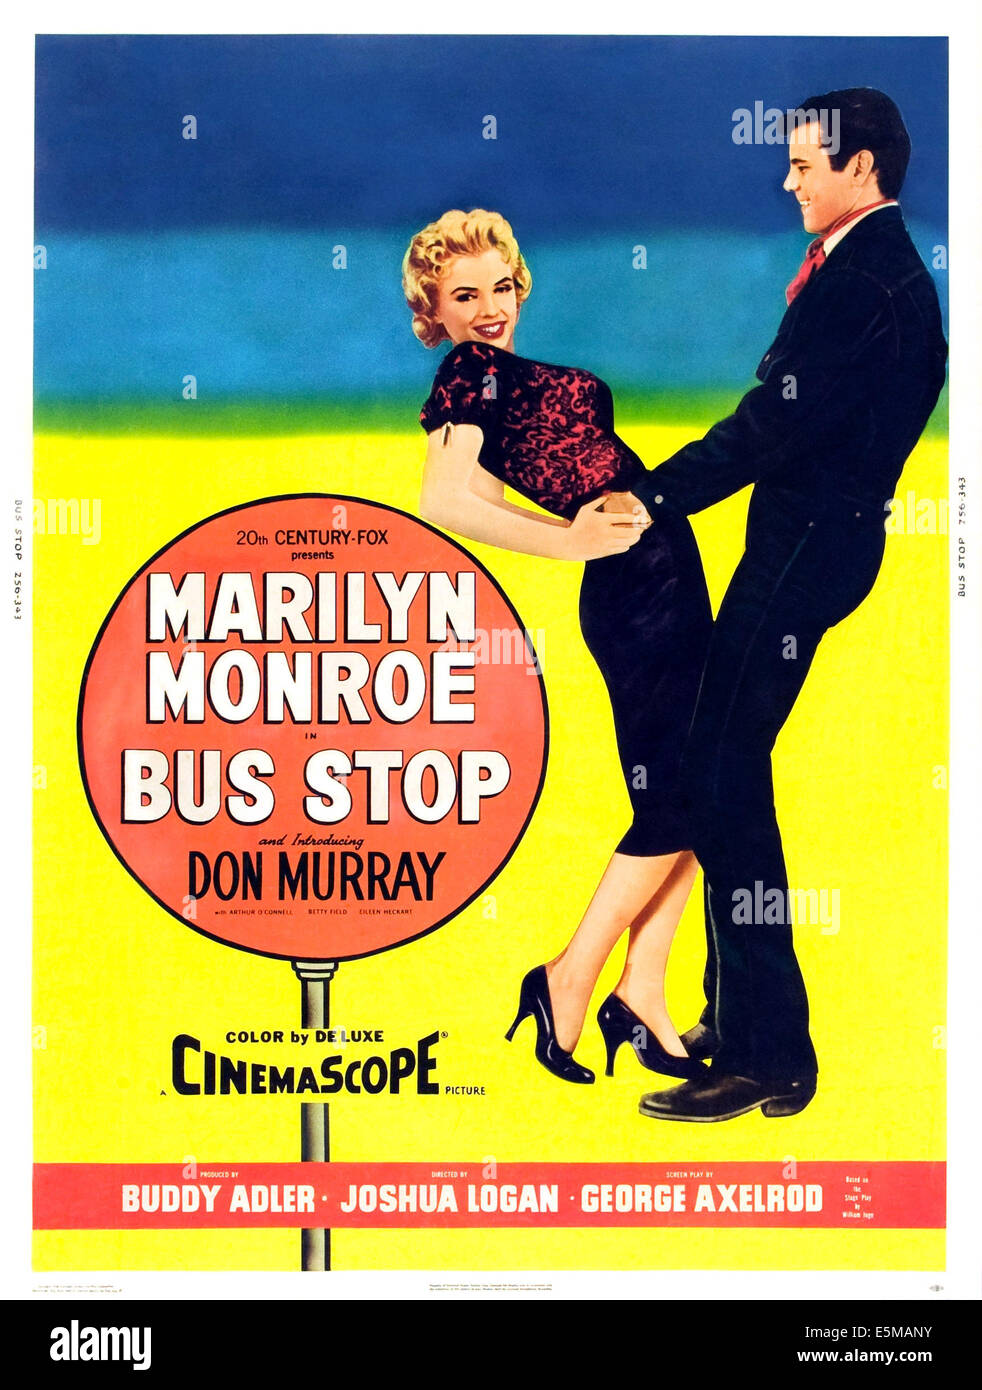 BUS STOP, l-r: Marilyn Monroe, Don Murray on poster art, 1956, TM and Copyright ©20th Century Fox Film Corp. - Stock Image